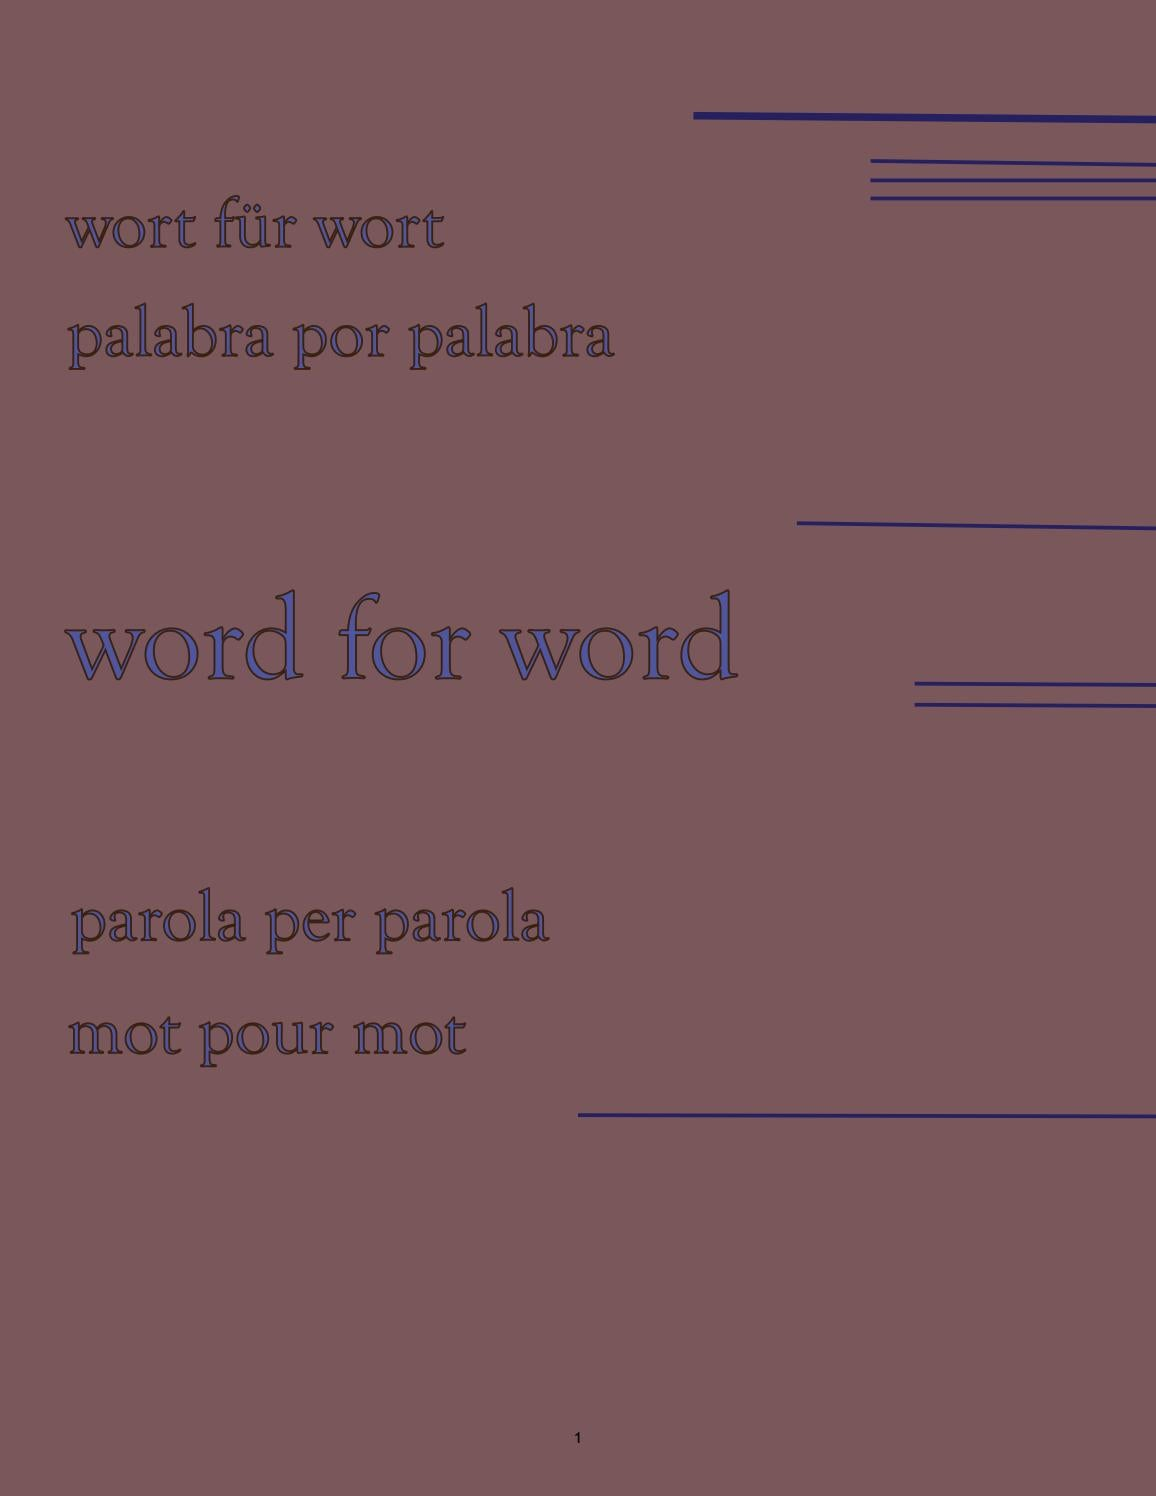 Sac De Sable Fin Pour Bac A Sable 2016 word for wordcusoa - issuu